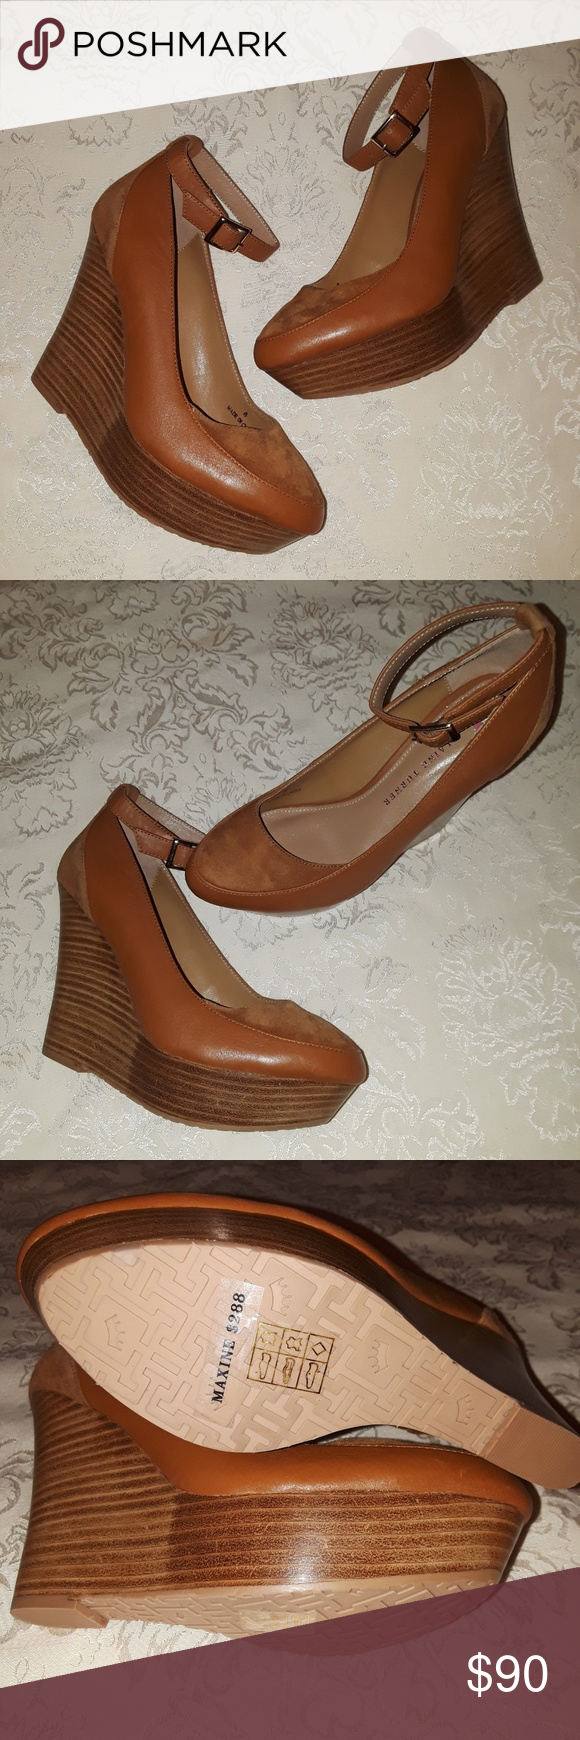 d01a02ba33af NWT Elaine Turner Shoes Platform  Elaine Turner Maxine Shoes -